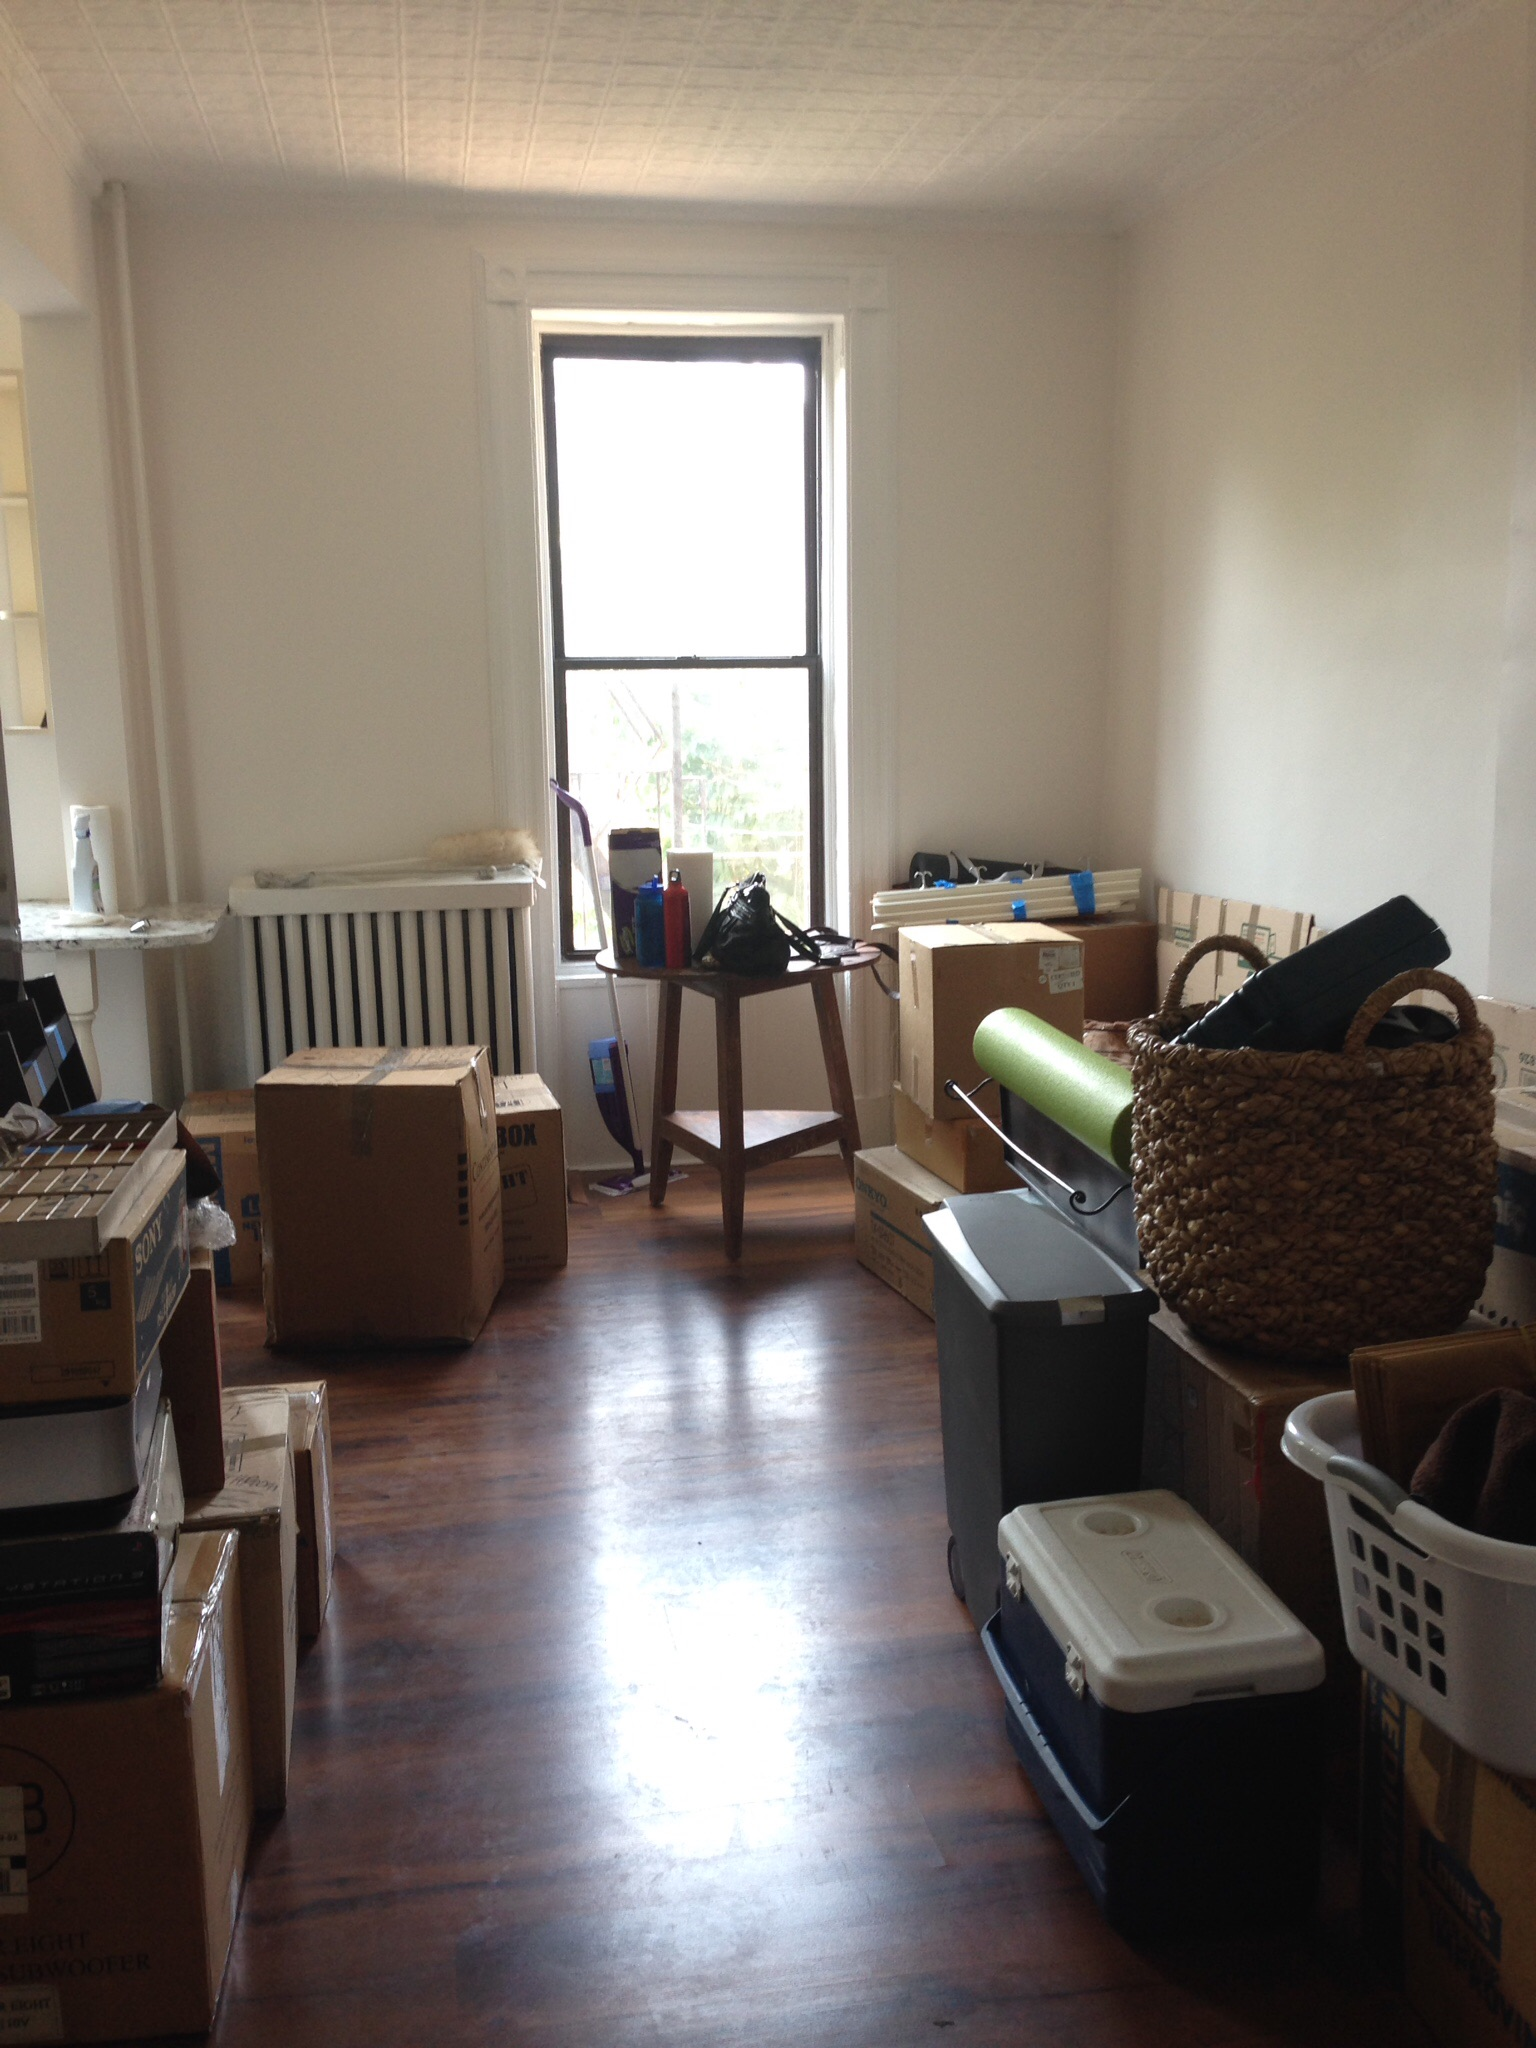 Moving and unpacking are always worse than one remembers.